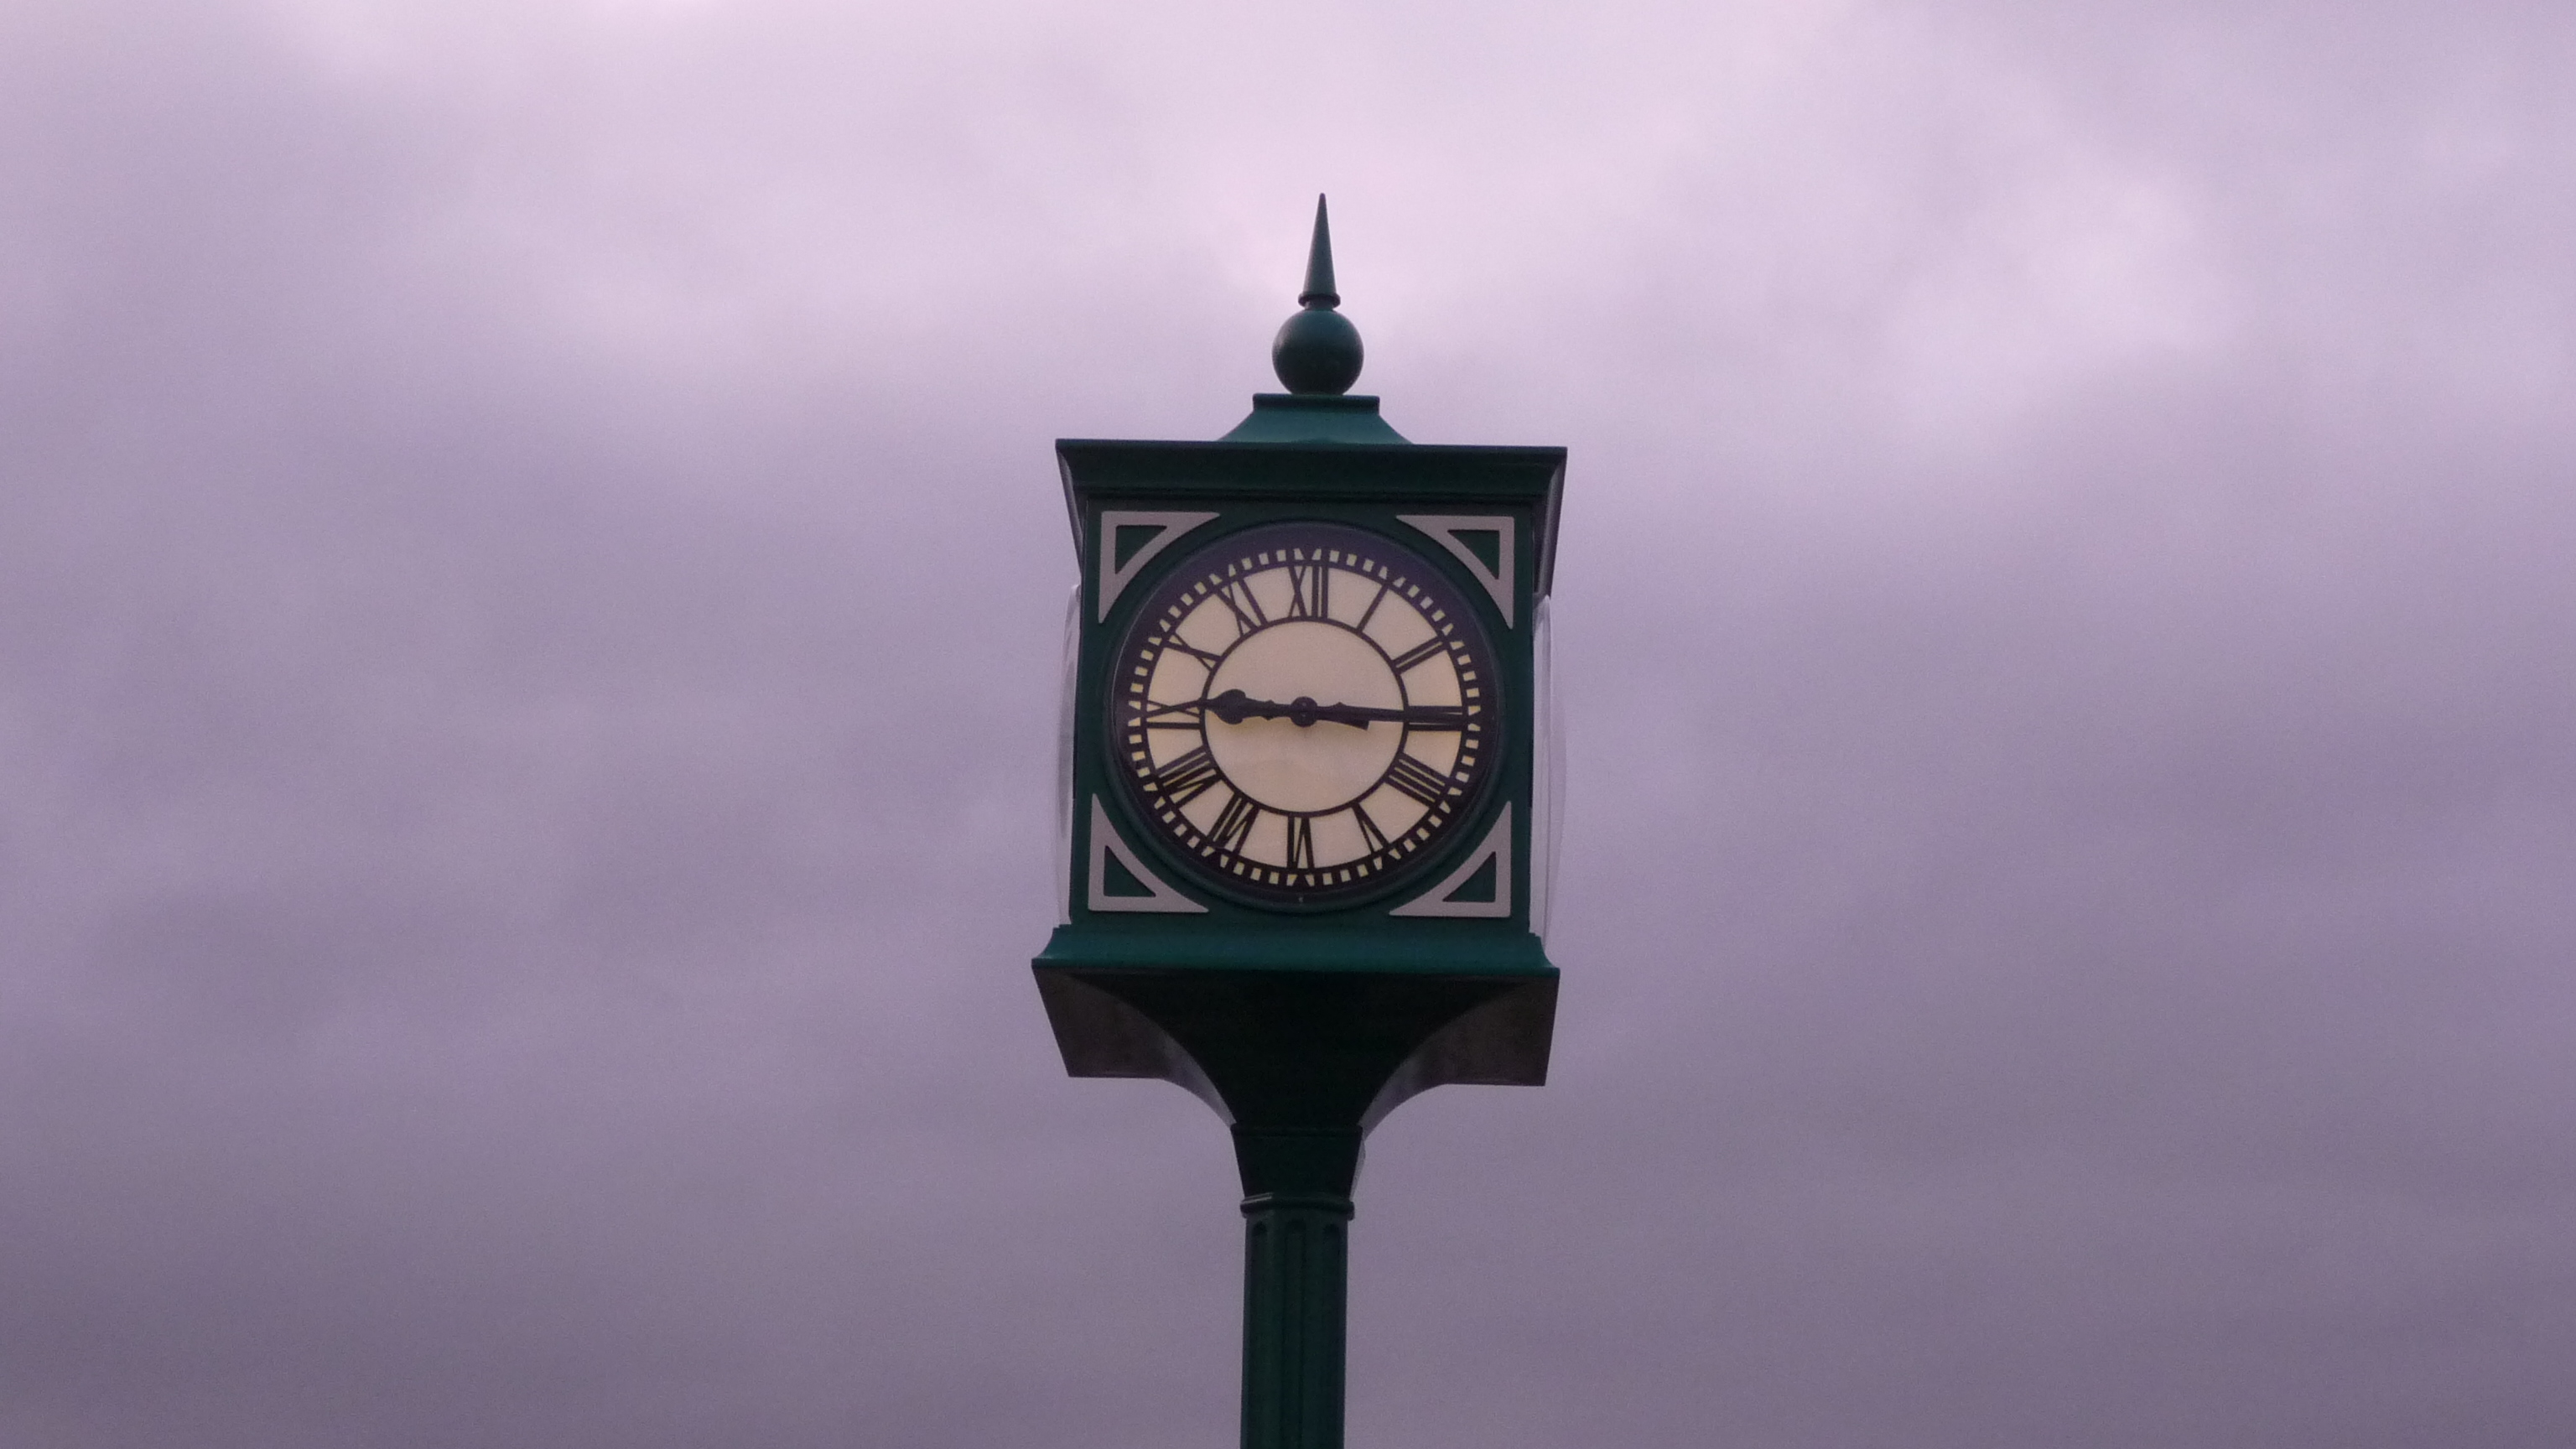 George style public pillar clock